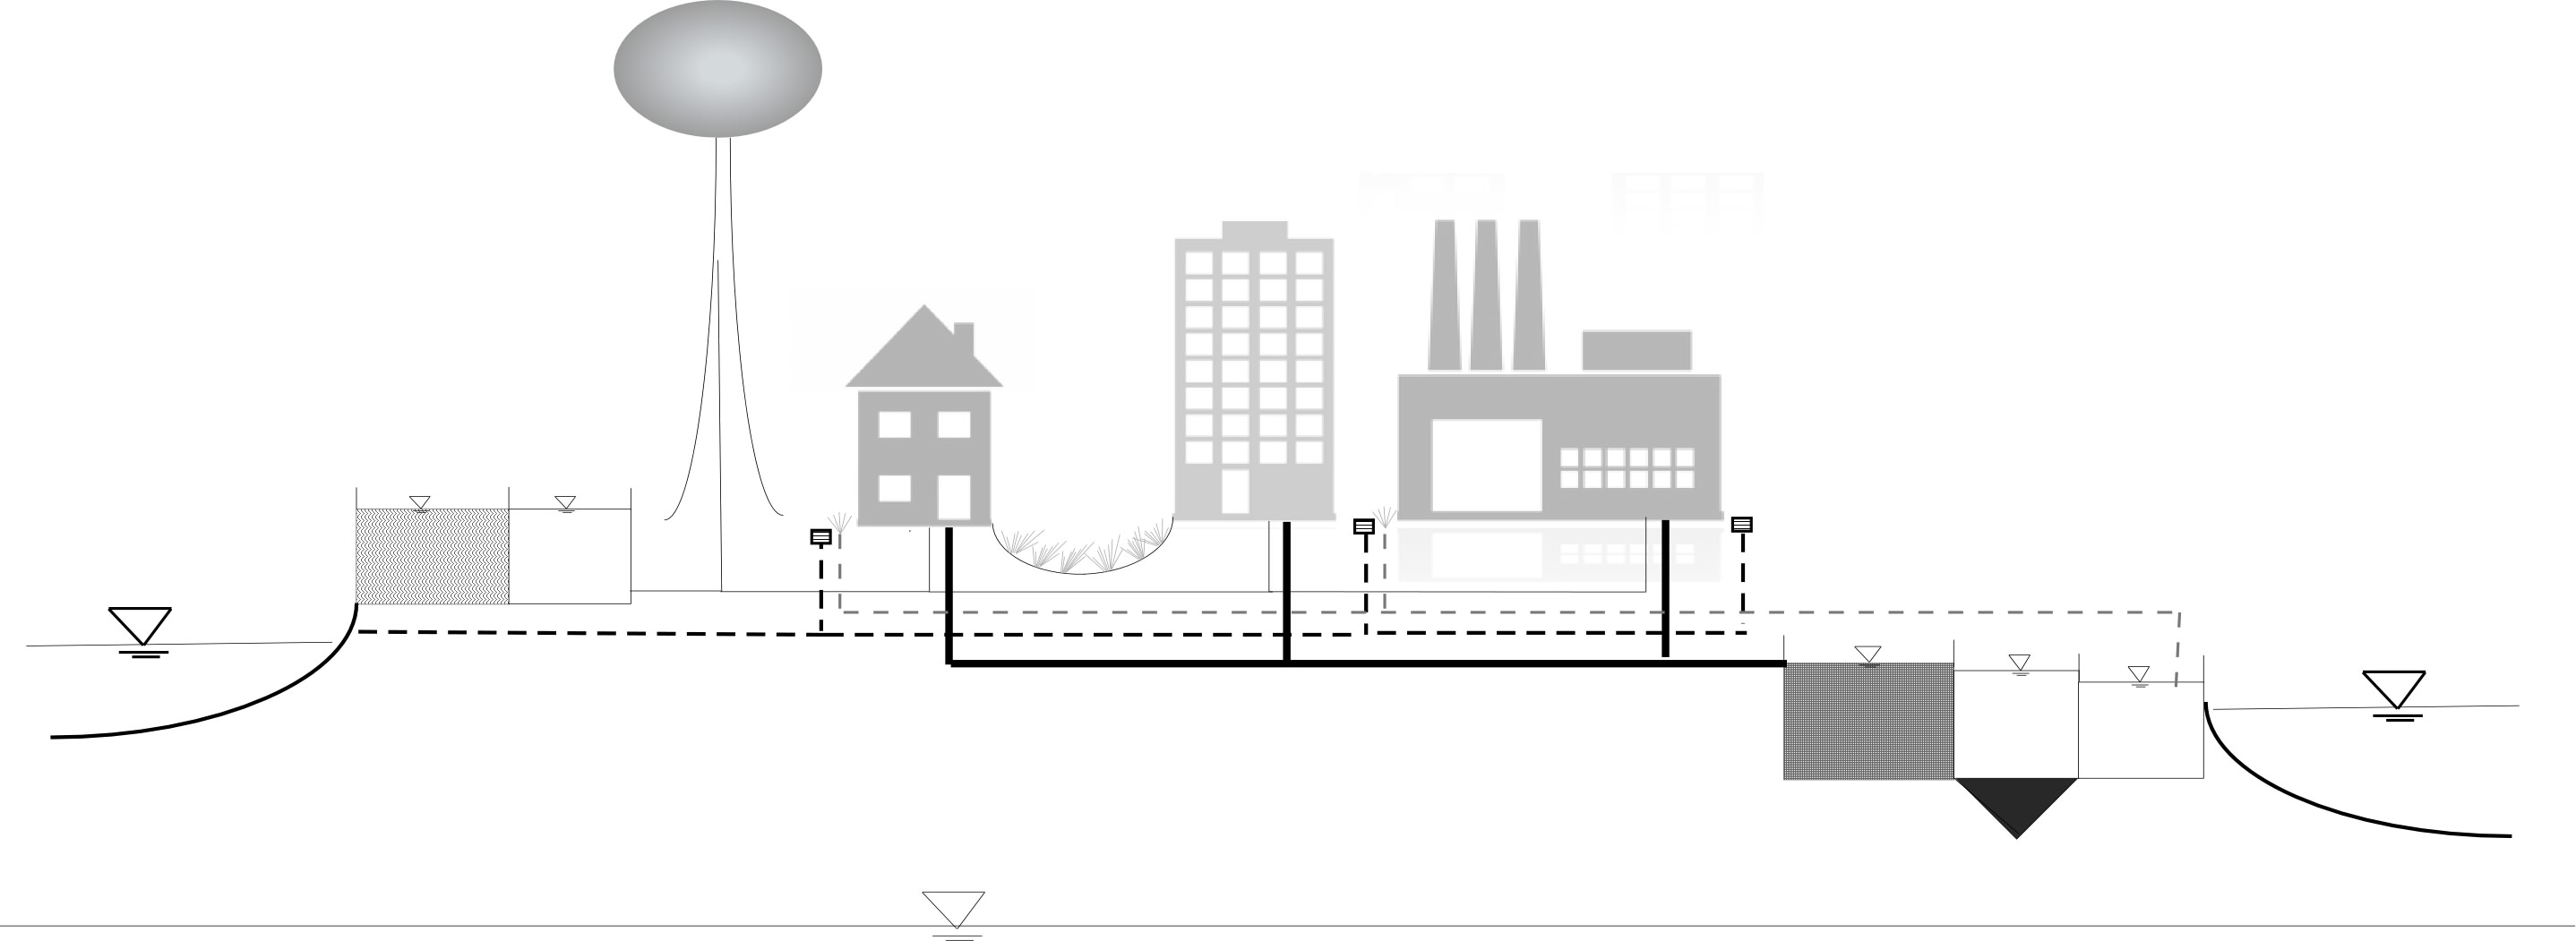 Figure 1:  Urban Water Environment Concept